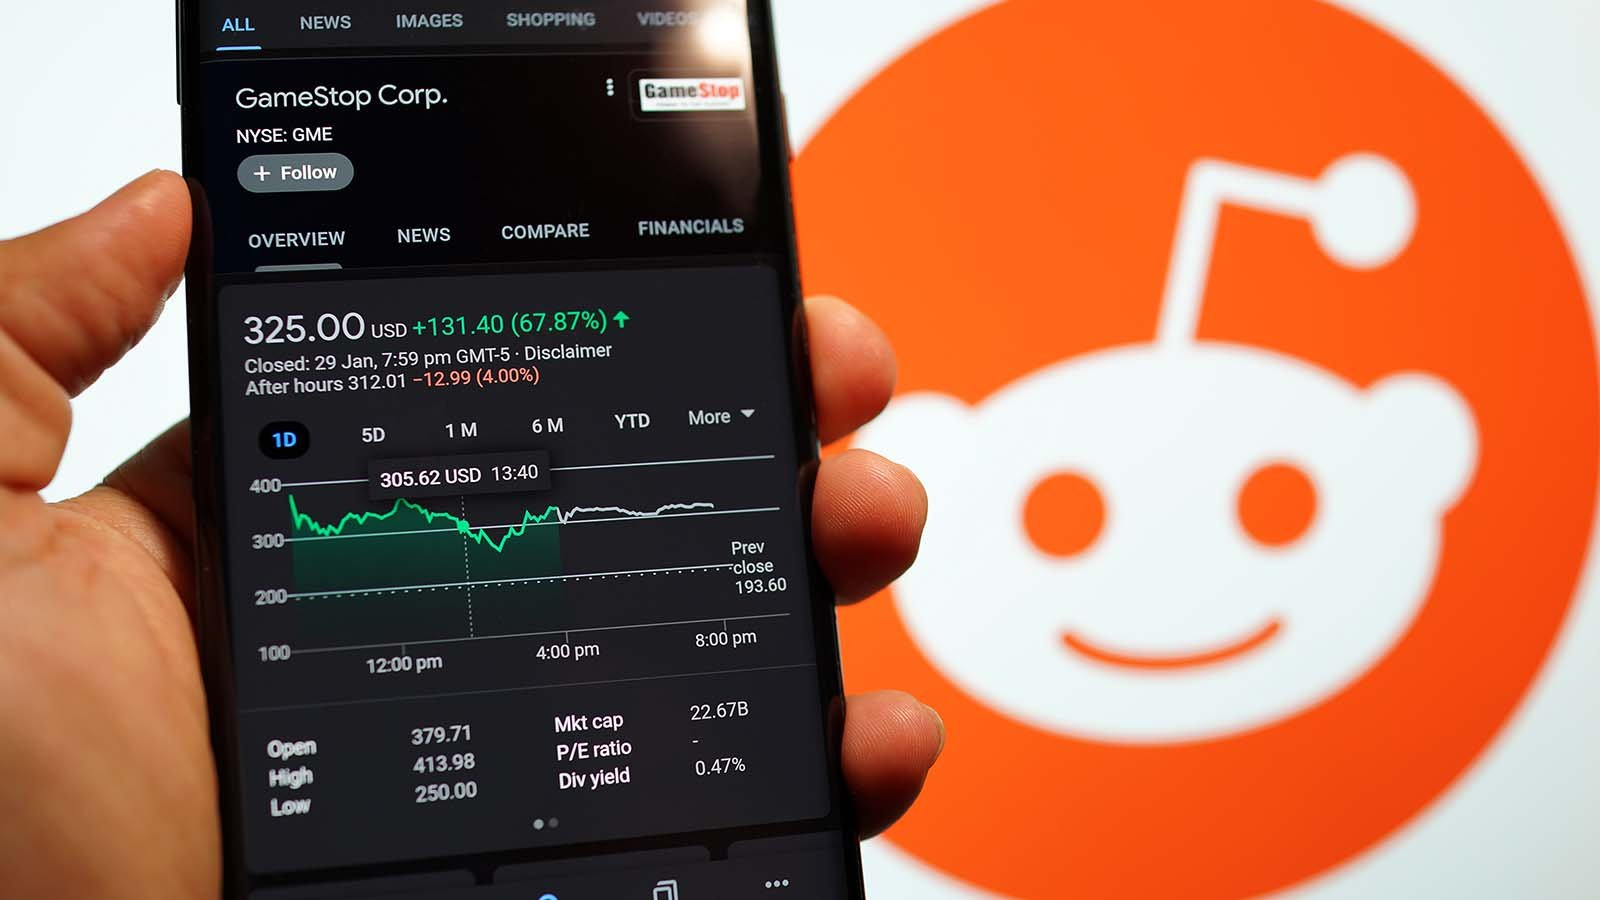 Reddit Stocks: Why r/WSB Faves GME, AMC and BB Are Gaining Today - InvestorPlace